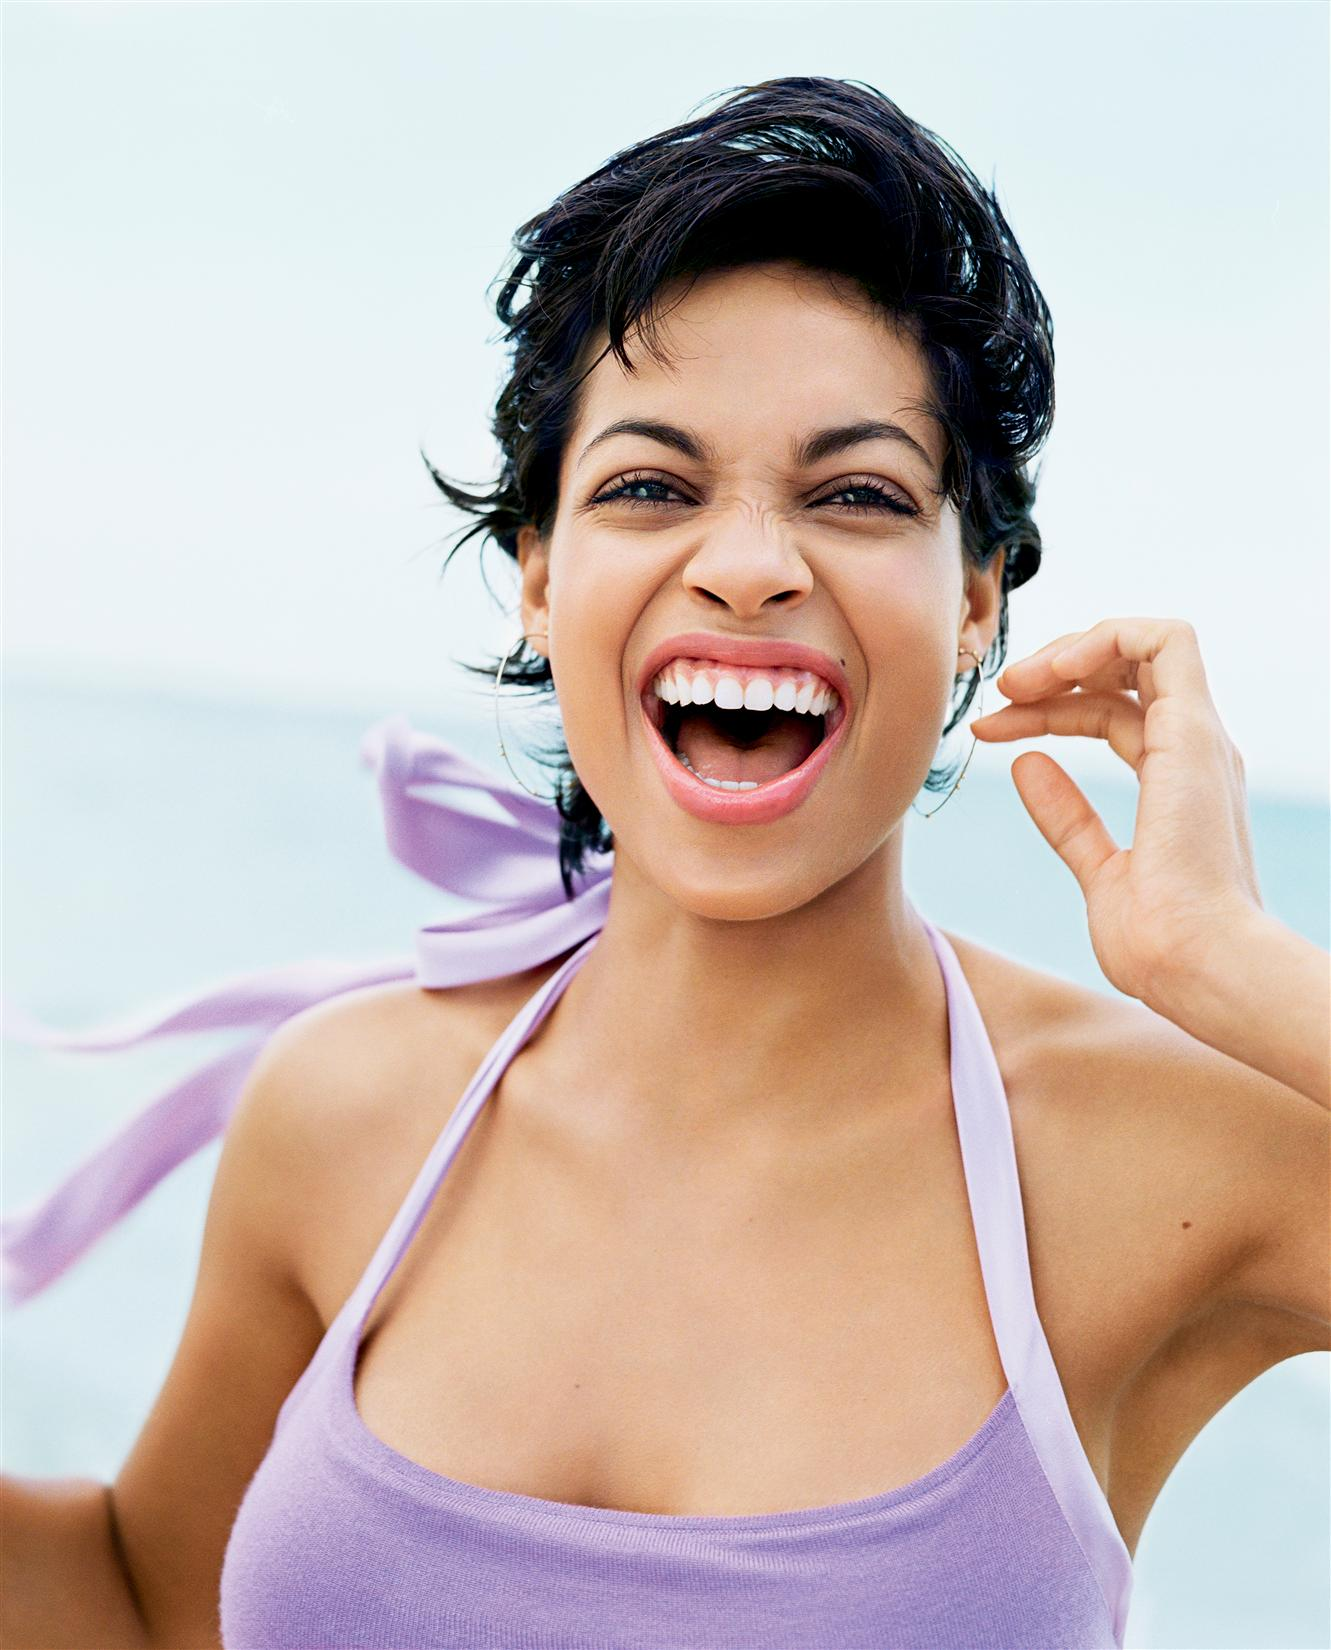 Rosario Dawson photo 64 of 504 pics, wallpaper - photo ... Rosario Dawson Facebook